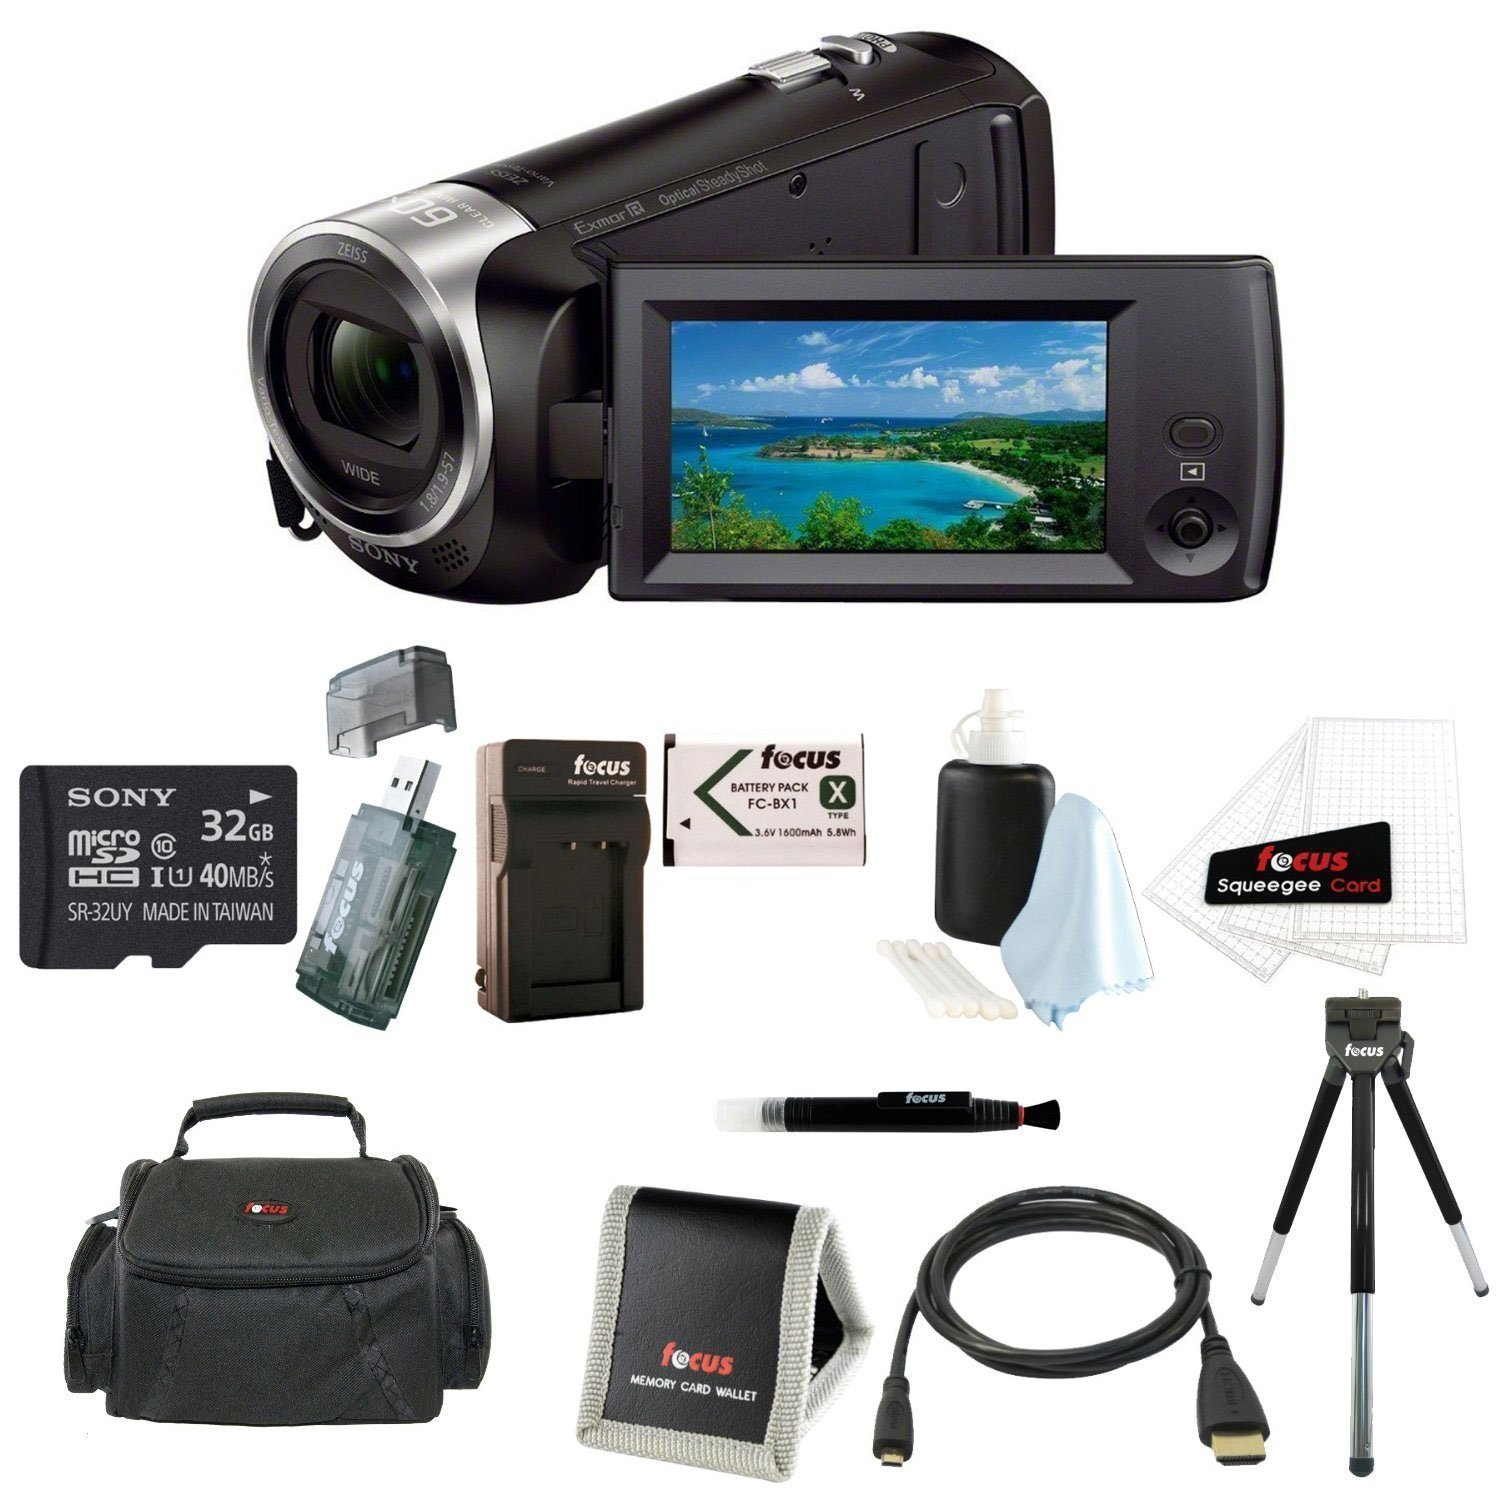 Cheap Sony Hd Hdd Camcorder, find Sony Hd Hdd Camcorder